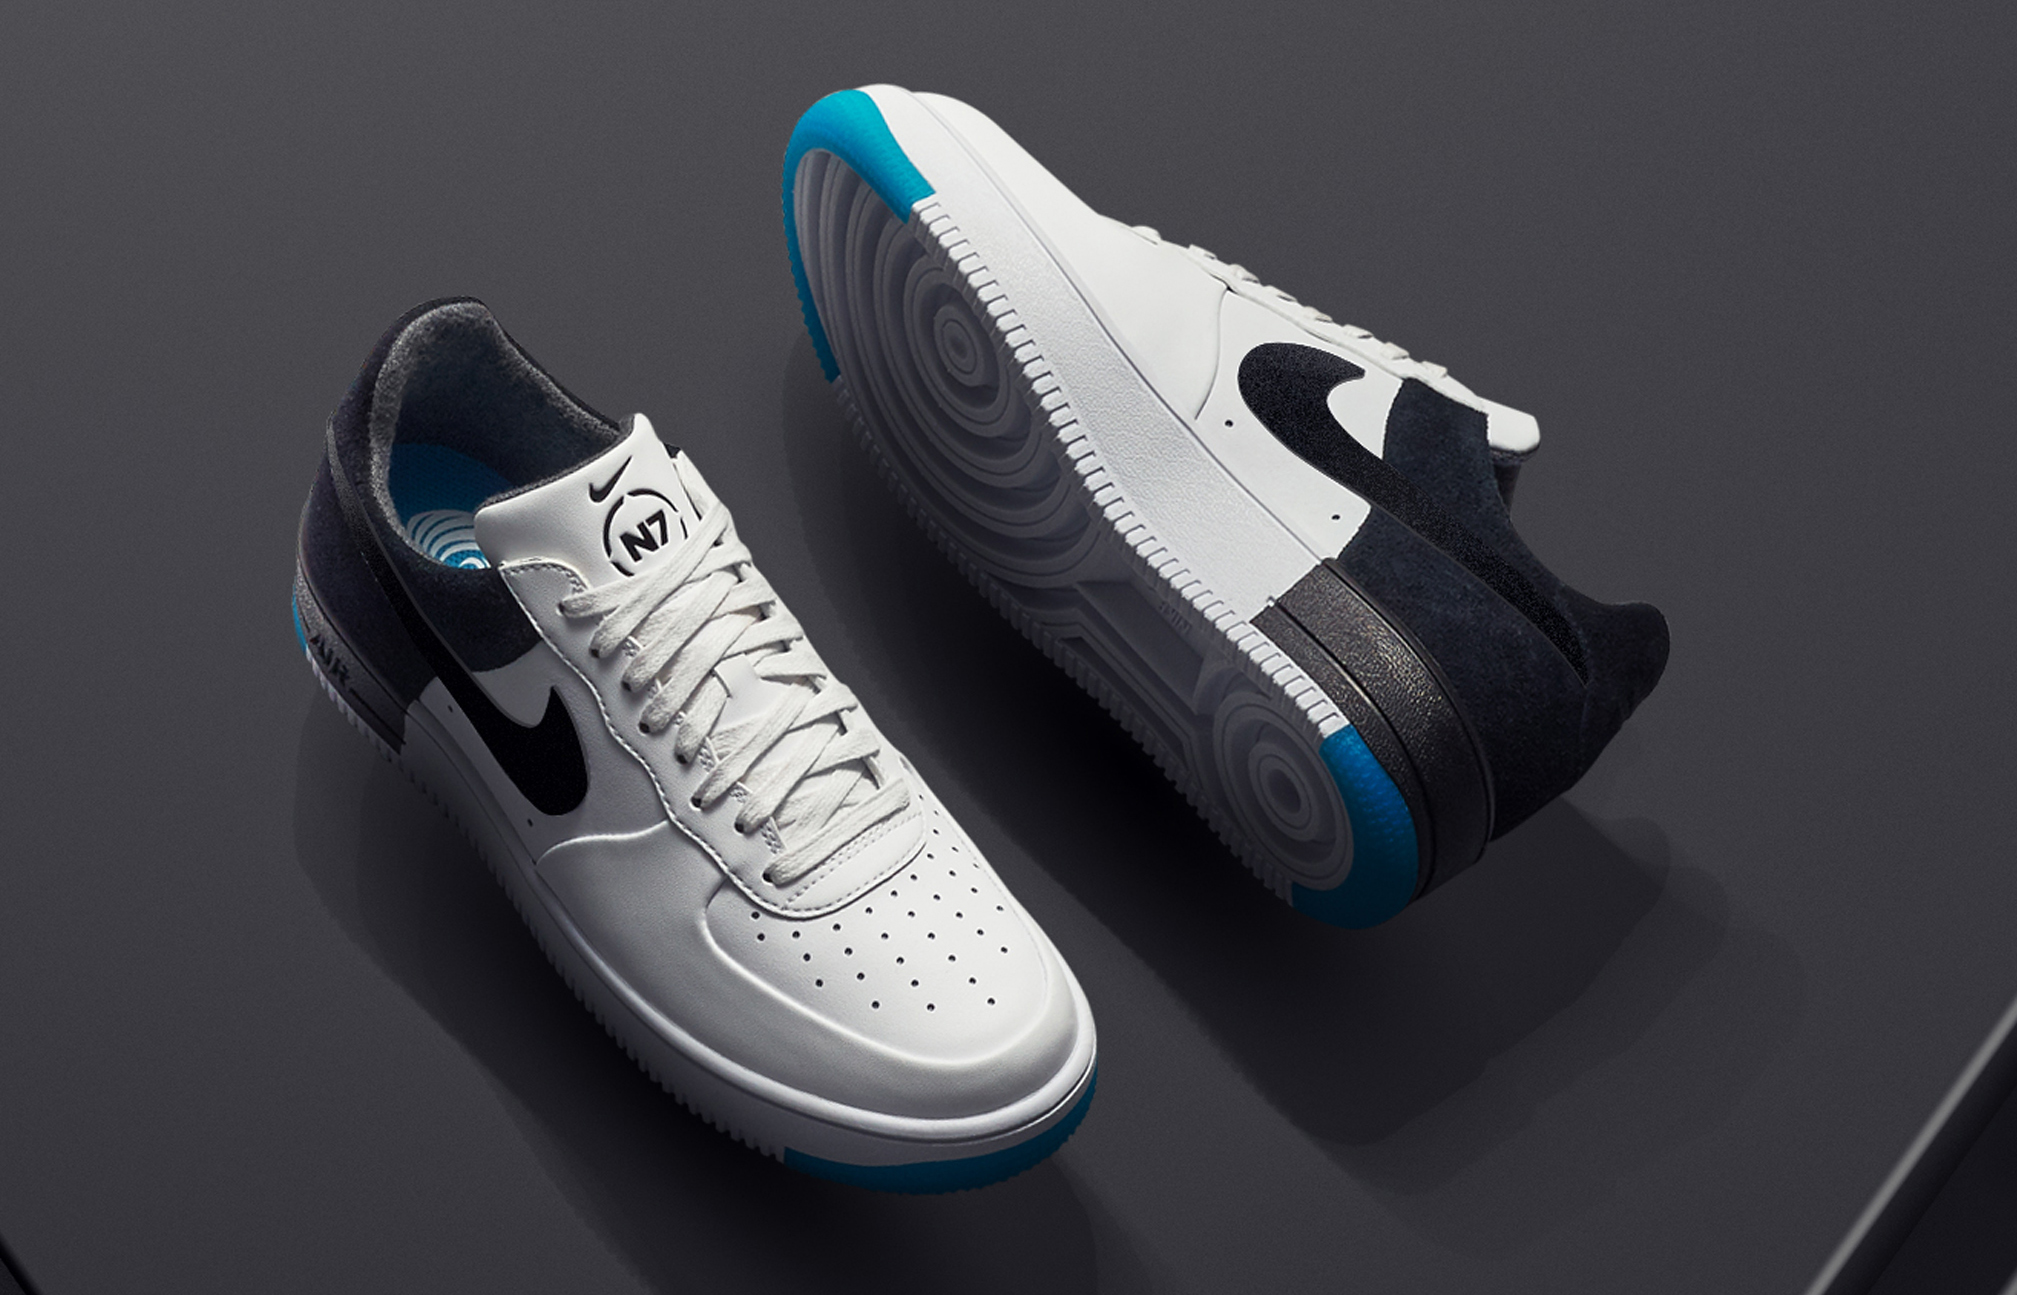 eac9a8a0aac0 Air Force 1 Nike N7 Image via Nike N7 Air Jordan 31